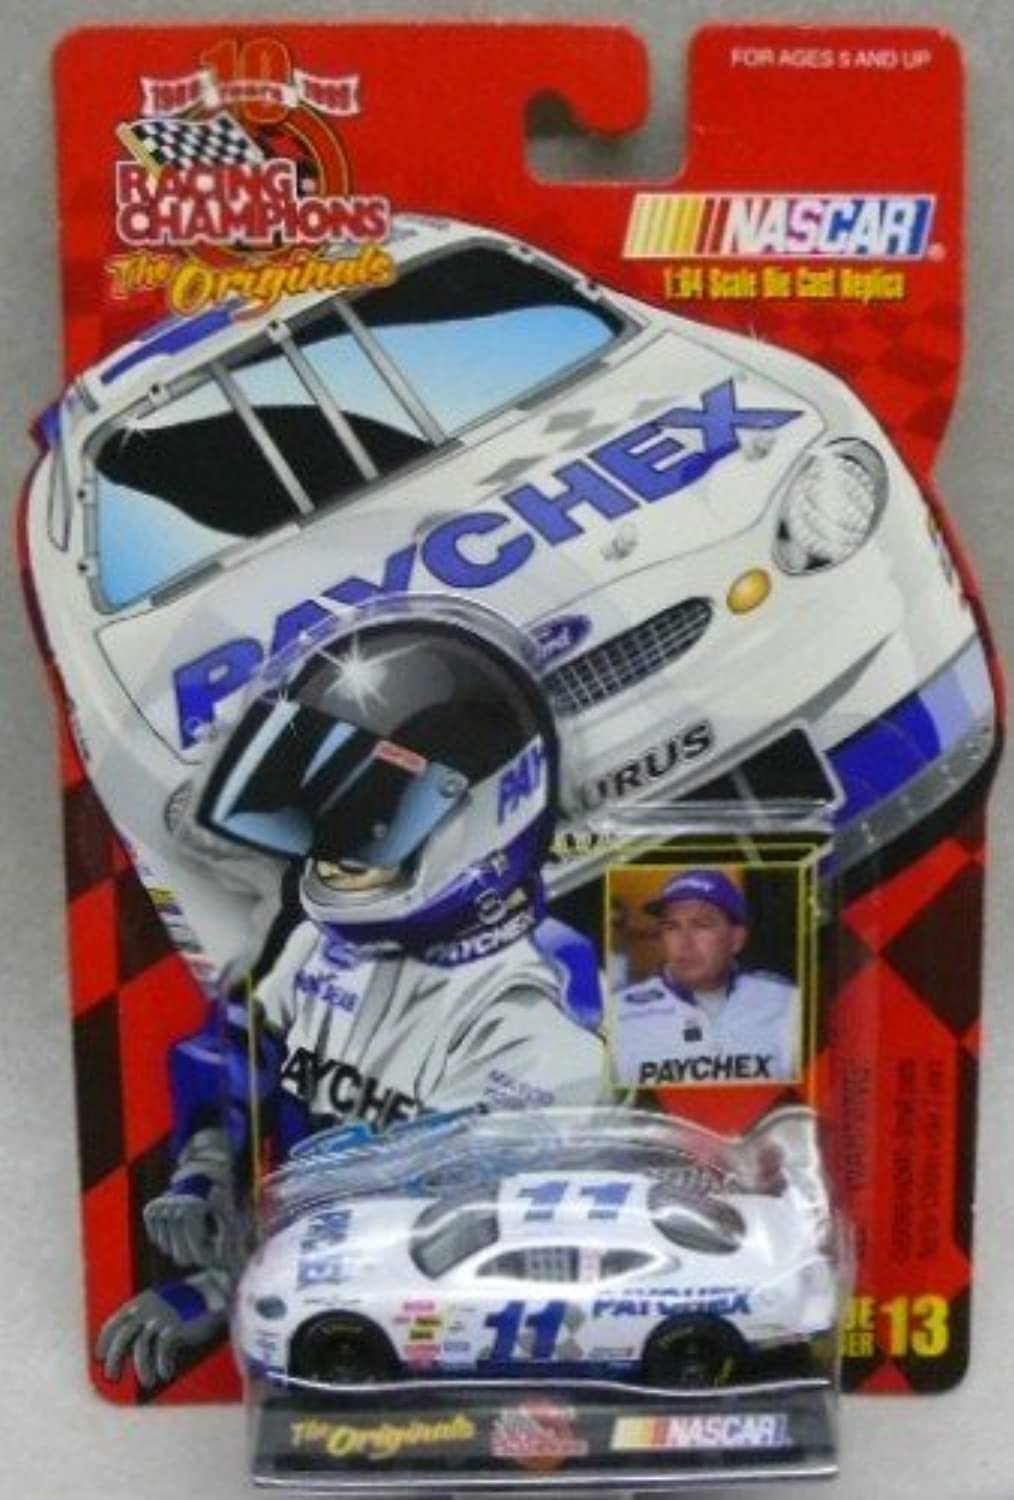 1999  Racing Champions  The Originals  Brett Bodine  No. 11 Paychex Ford Taurus 1 64 Diecast Collectible Car and Collector Card by Racing Champions